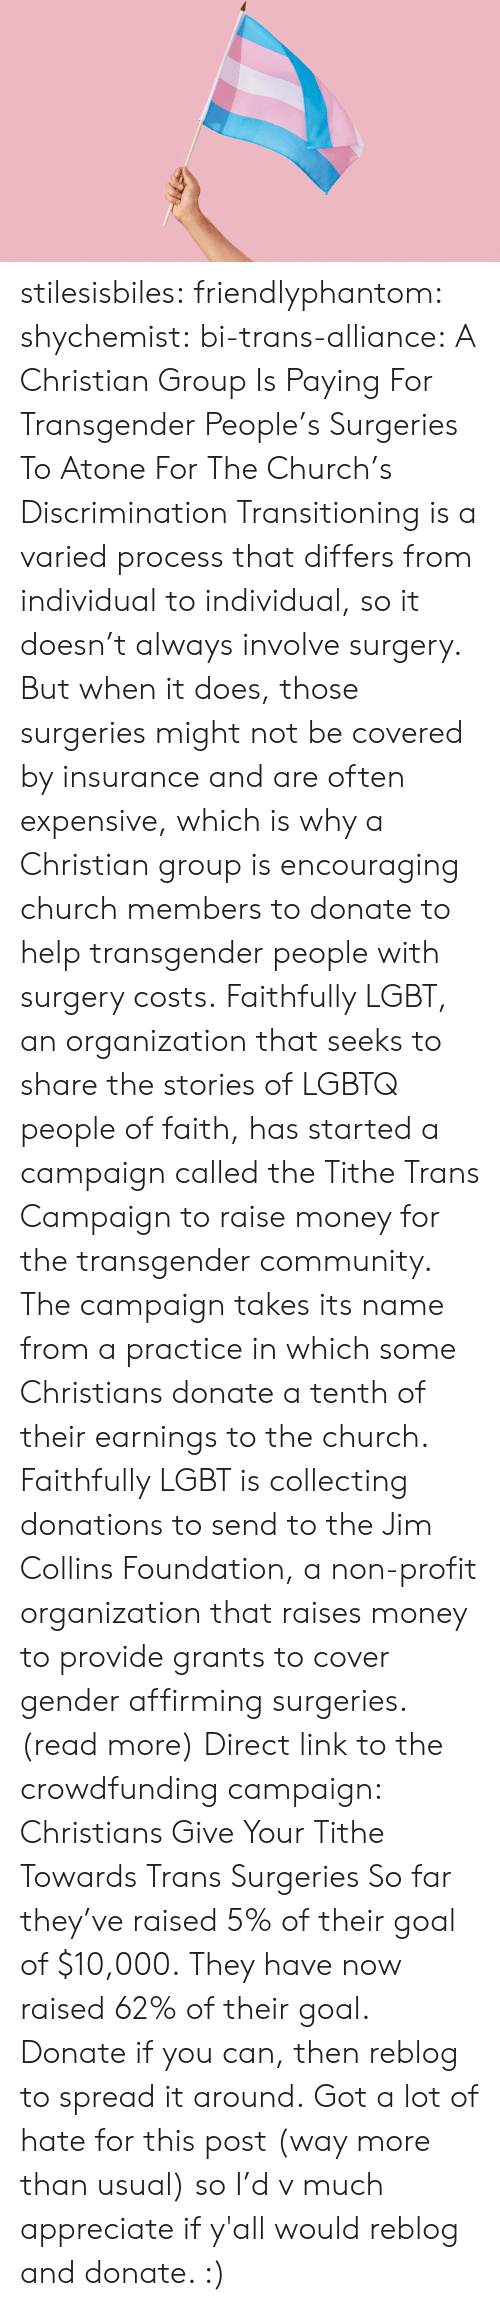 merriam webster: stilesisbiles:  friendlyphantom: shychemist:  bi-trans-alliance:    A Christian Group Is Paying For Transgender People's Surgeries To Atone For The Church's Discrimination      Transitioning is a varied process that differs from individual to individual, so it doesn't always involve surgery. But when it does, those surgeries might not be covered by insurance and are often expensive, which is why a Christian group is encouraging church members to donate to help transgender people with surgery costs. Faithfully LGBT, an organization that seeks to share the stories of LGBTQ people of faith, has started a campaign called the Tithe Trans Campaign to raise money for the transgender community. The campaign takes its name from a practice in which some Christians donate a tenth of their earnings to the church. Faithfully LGBT is collecting donations to send to the Jim Collins Foundation, a non-profit organization that raises money to provide grants to cover gender affirming surgeries.   (read more)   Direct link to the crowdfunding campaign: Christians Give Your Tithe Towards Trans Surgeries So far they've raised 5% of their goal of $10,000.  They have now raised 62% of their goal. Donate if you can, then reblog to spread it around. Got a lot of hate for this post (way more than usual) so I'd v much appreciate if y'all would reblog and donate. :)